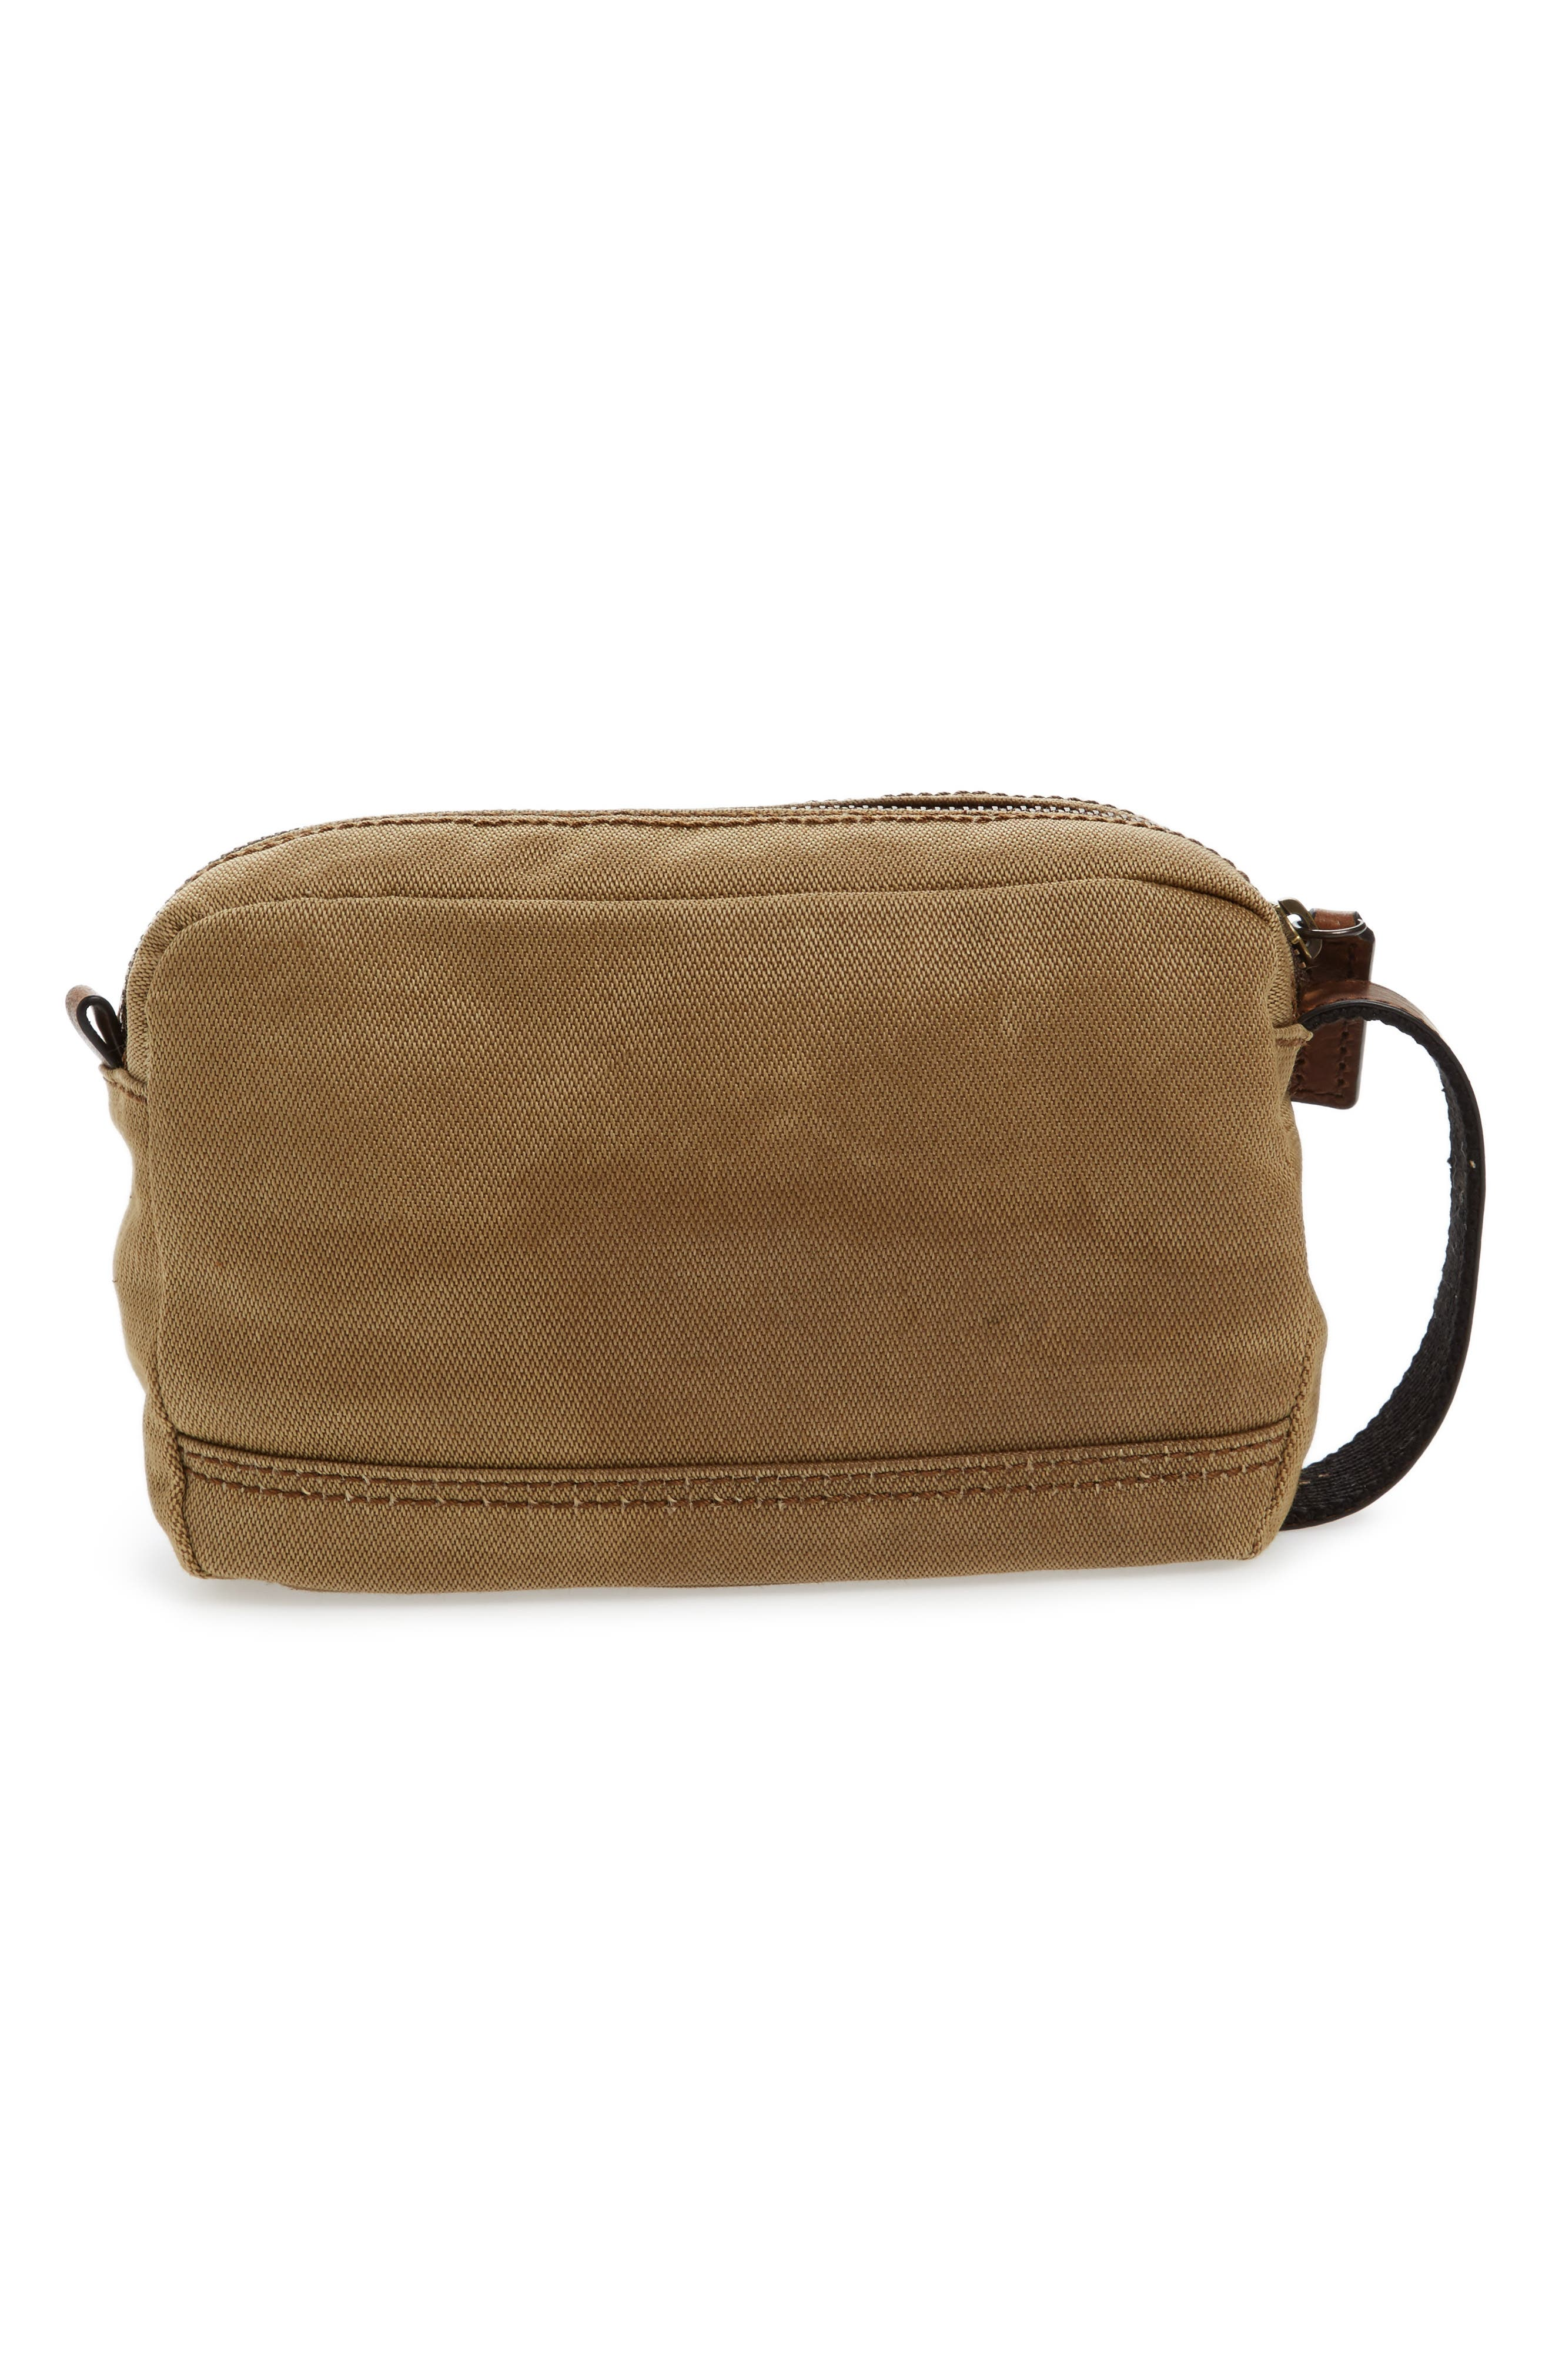 Carter Dopp Kit,                             Alternate thumbnail 2, color,                             231